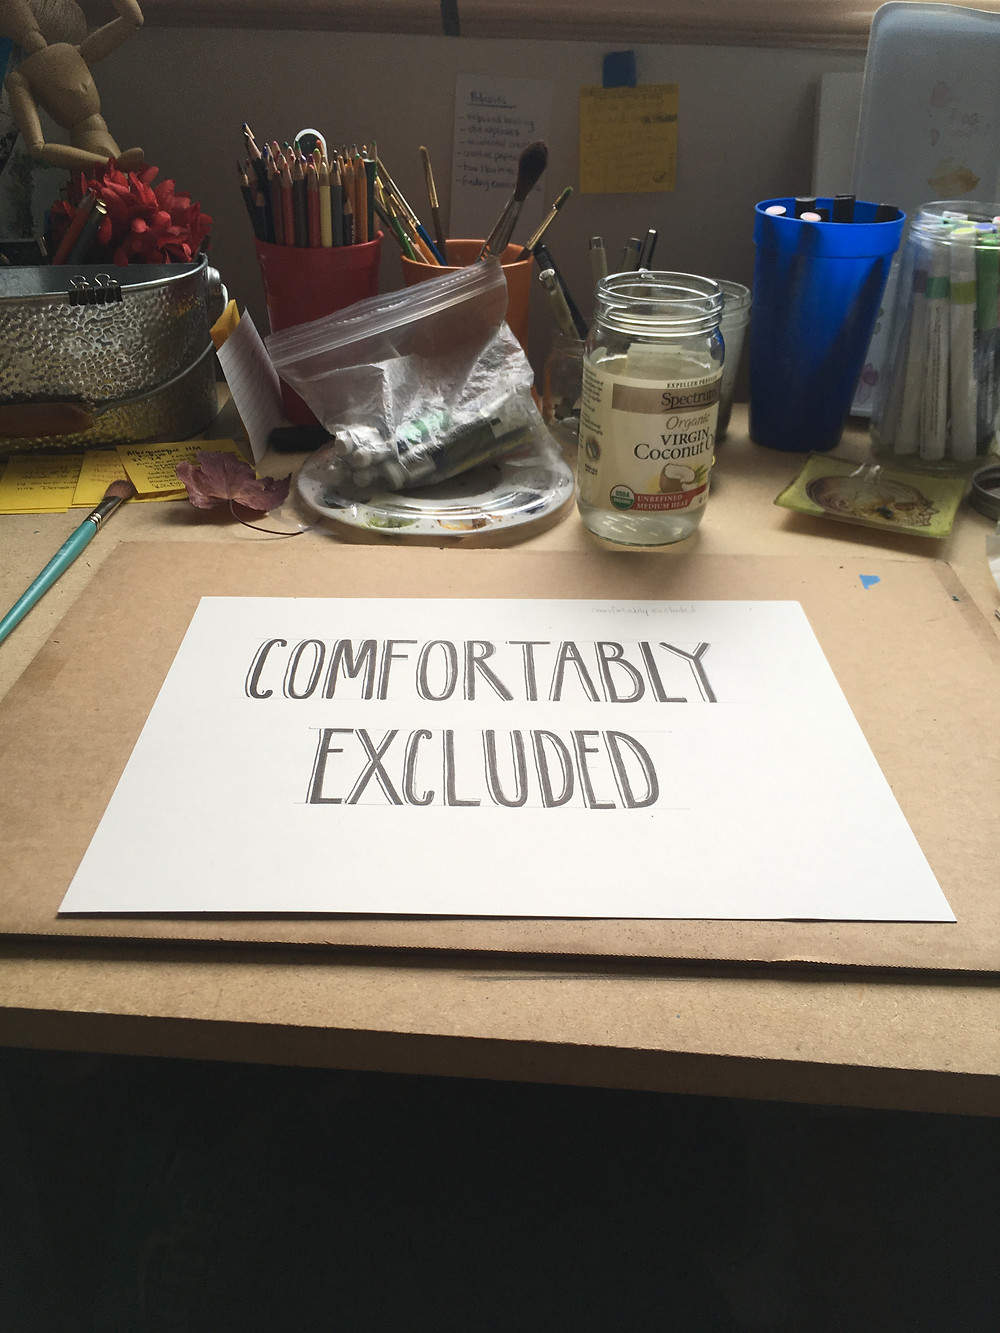 Hand written font for the title